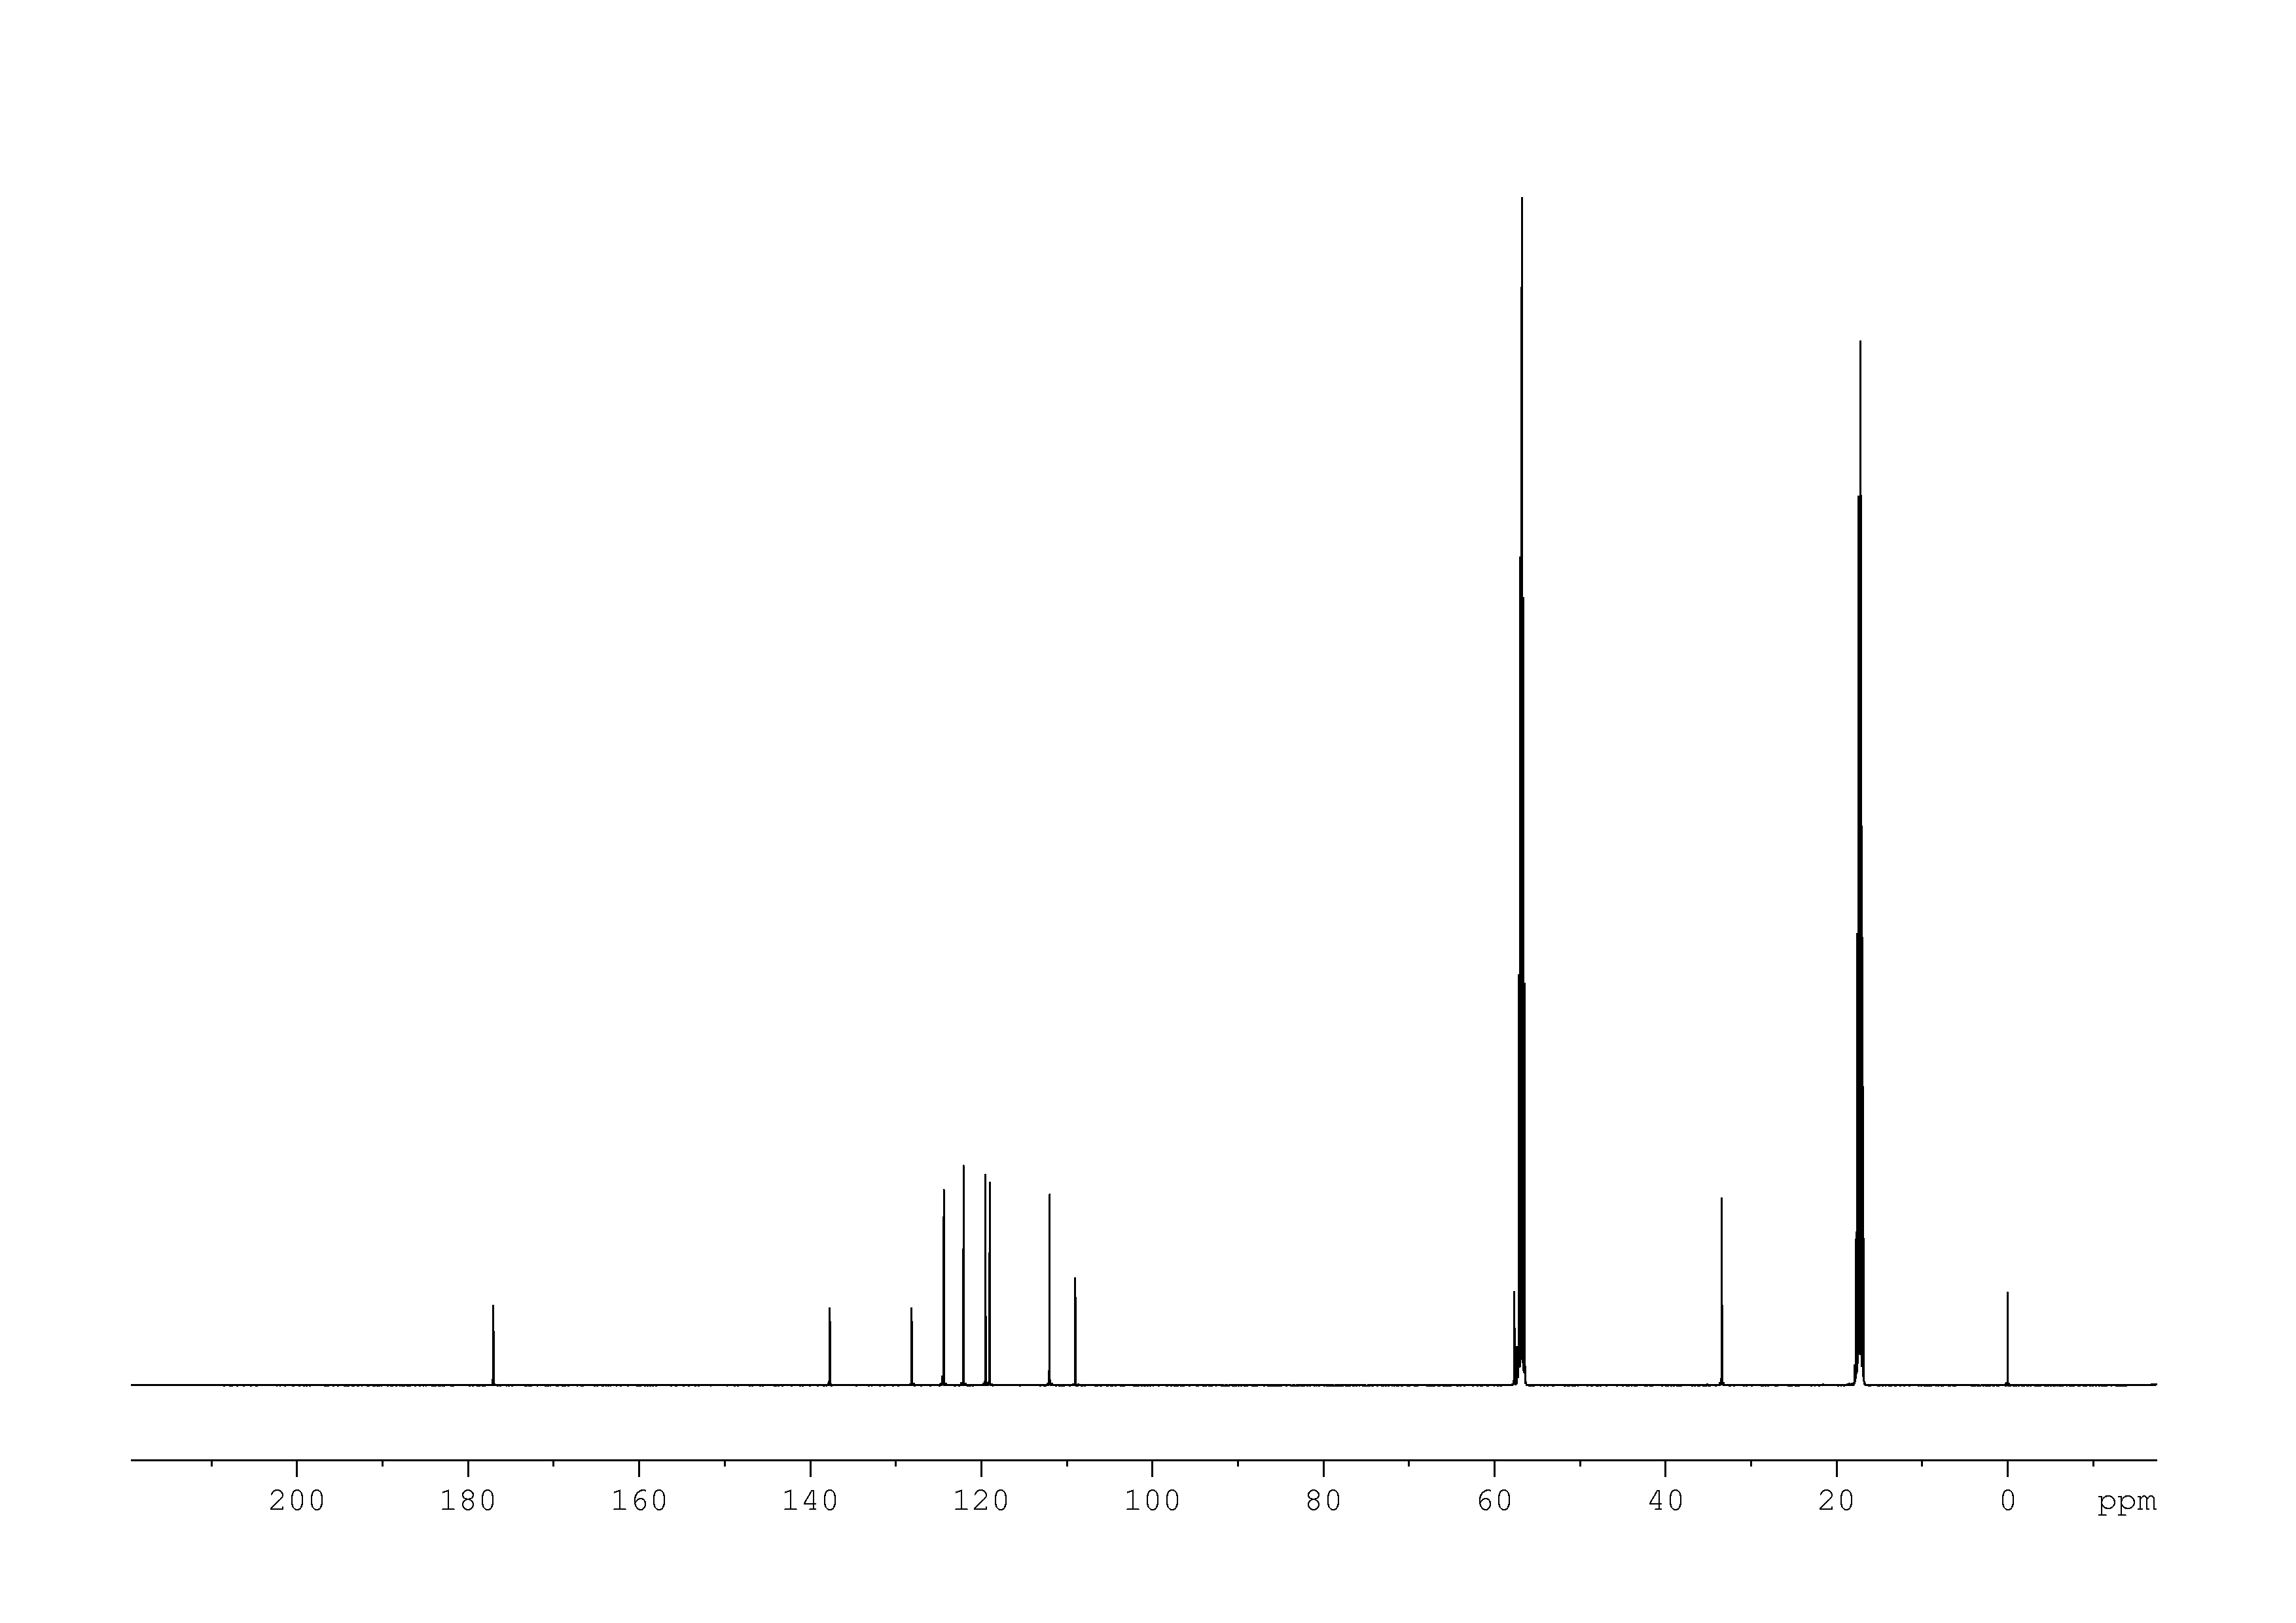 1D 13C, n/a spectrum for indole-3-acetamide